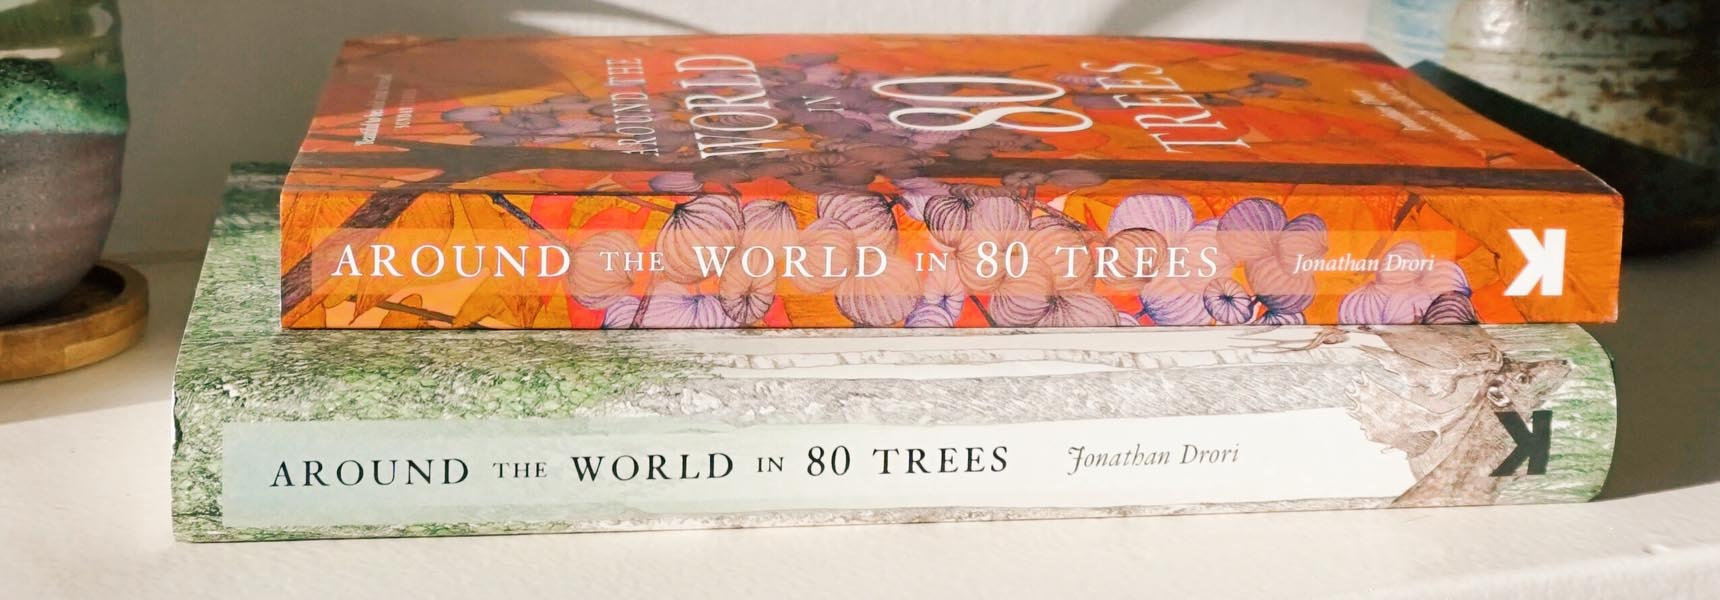 Around the World in 80 Trees in both hardback and paperback